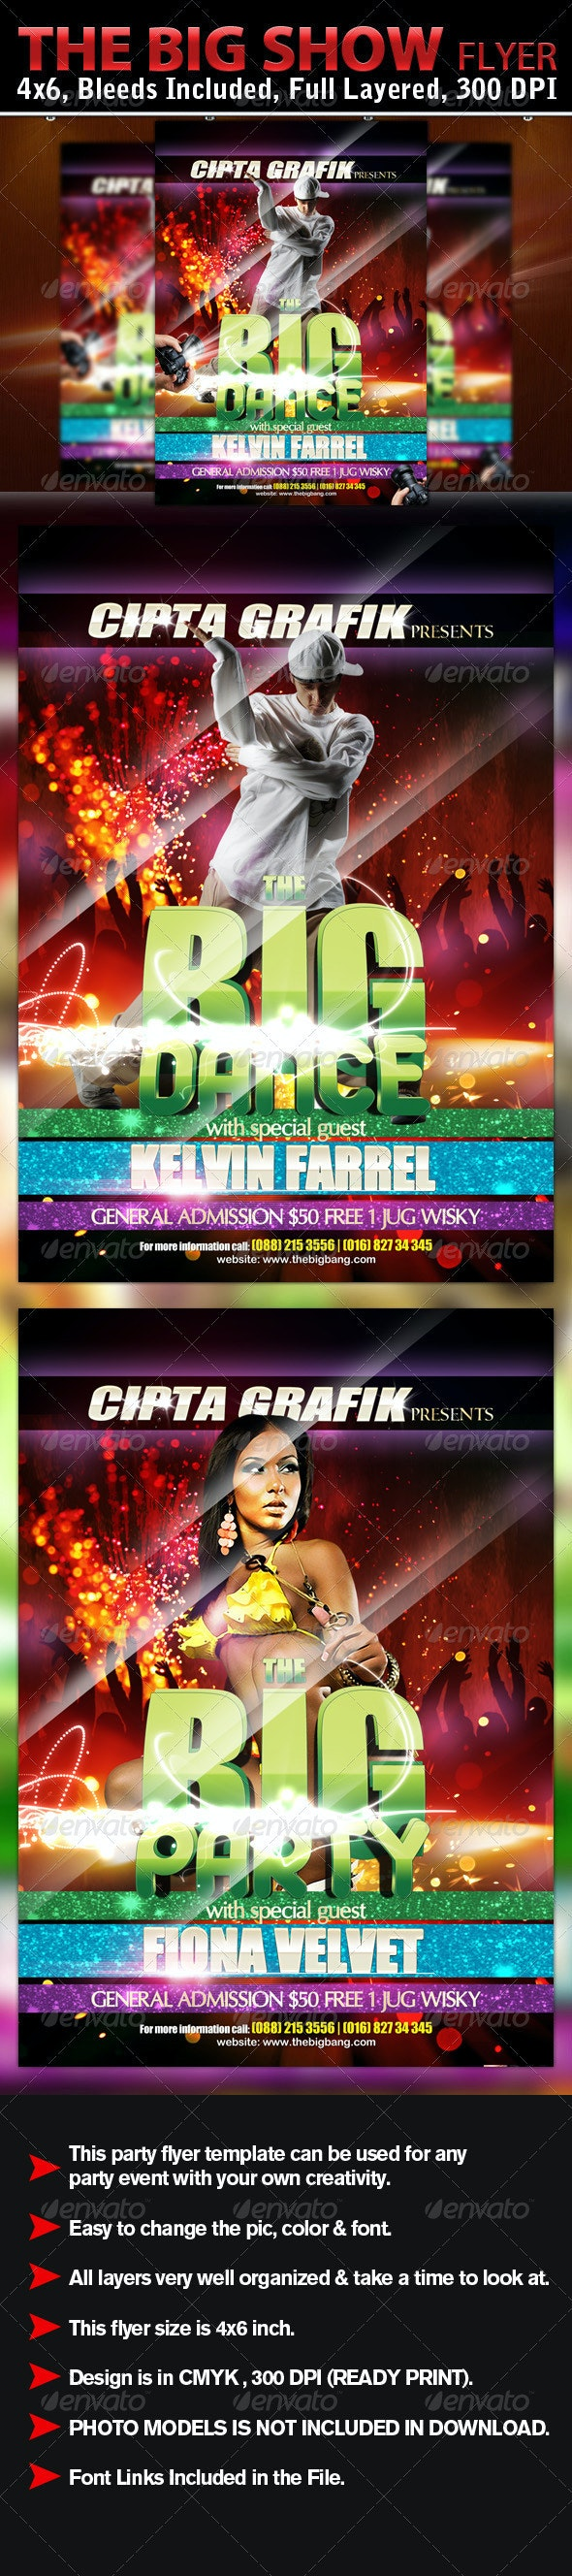 The Big Show Flyer Template - Clubs & Parties Events